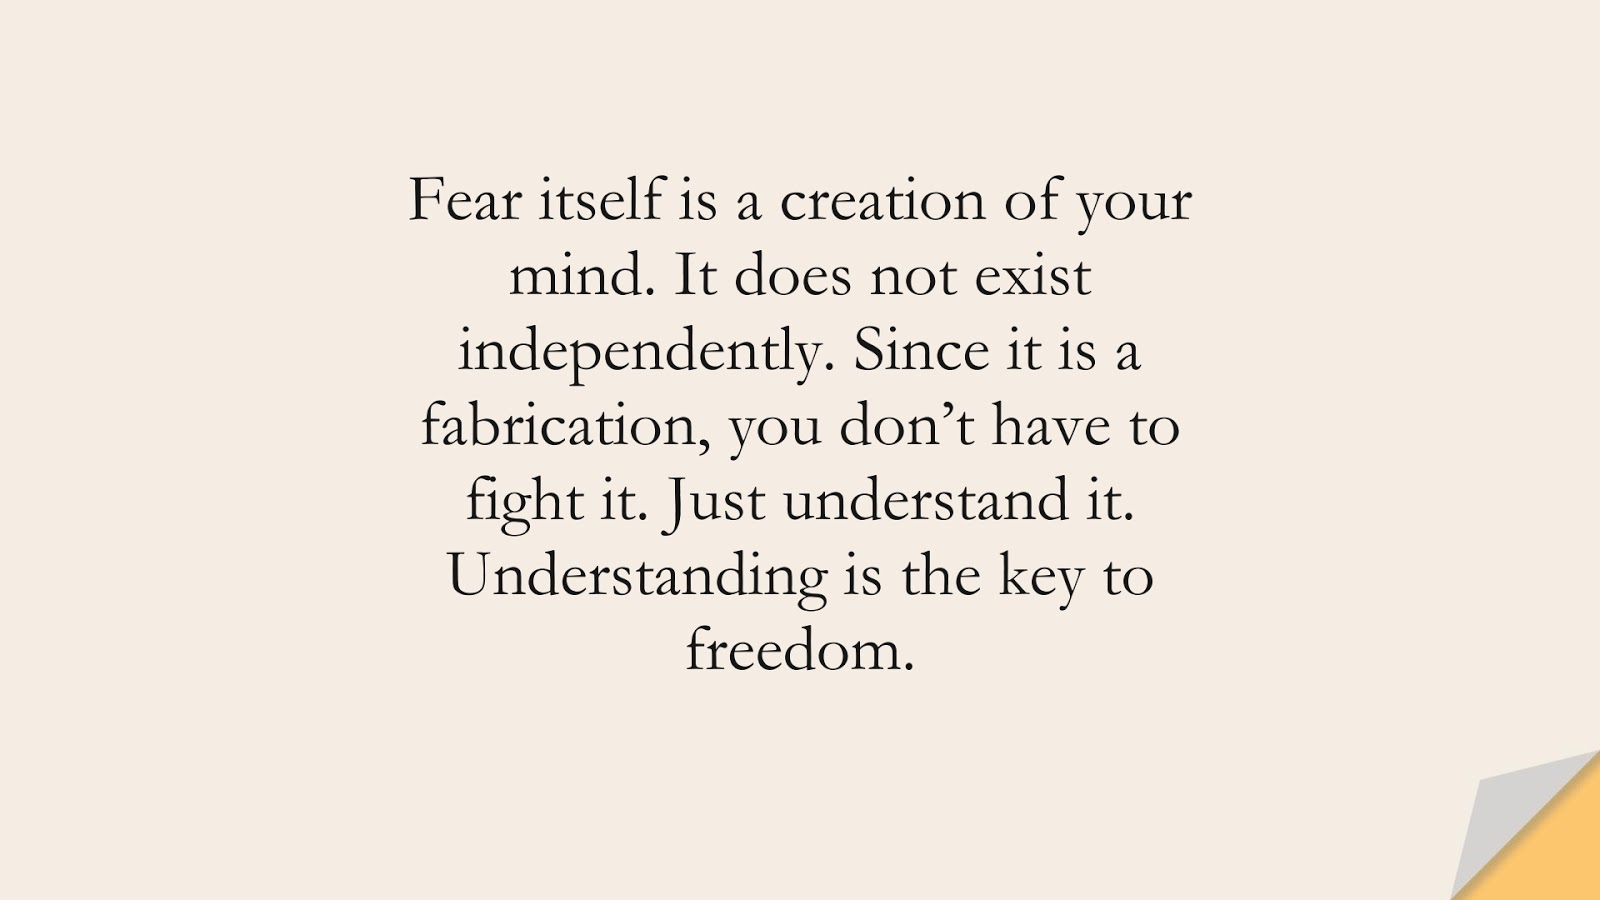 Fear itself is a creation of your mind. It does not exist independently. Since it is a fabrication, you don't have to fight it. Just understand it. Understanding is the key to freedom.FALSE